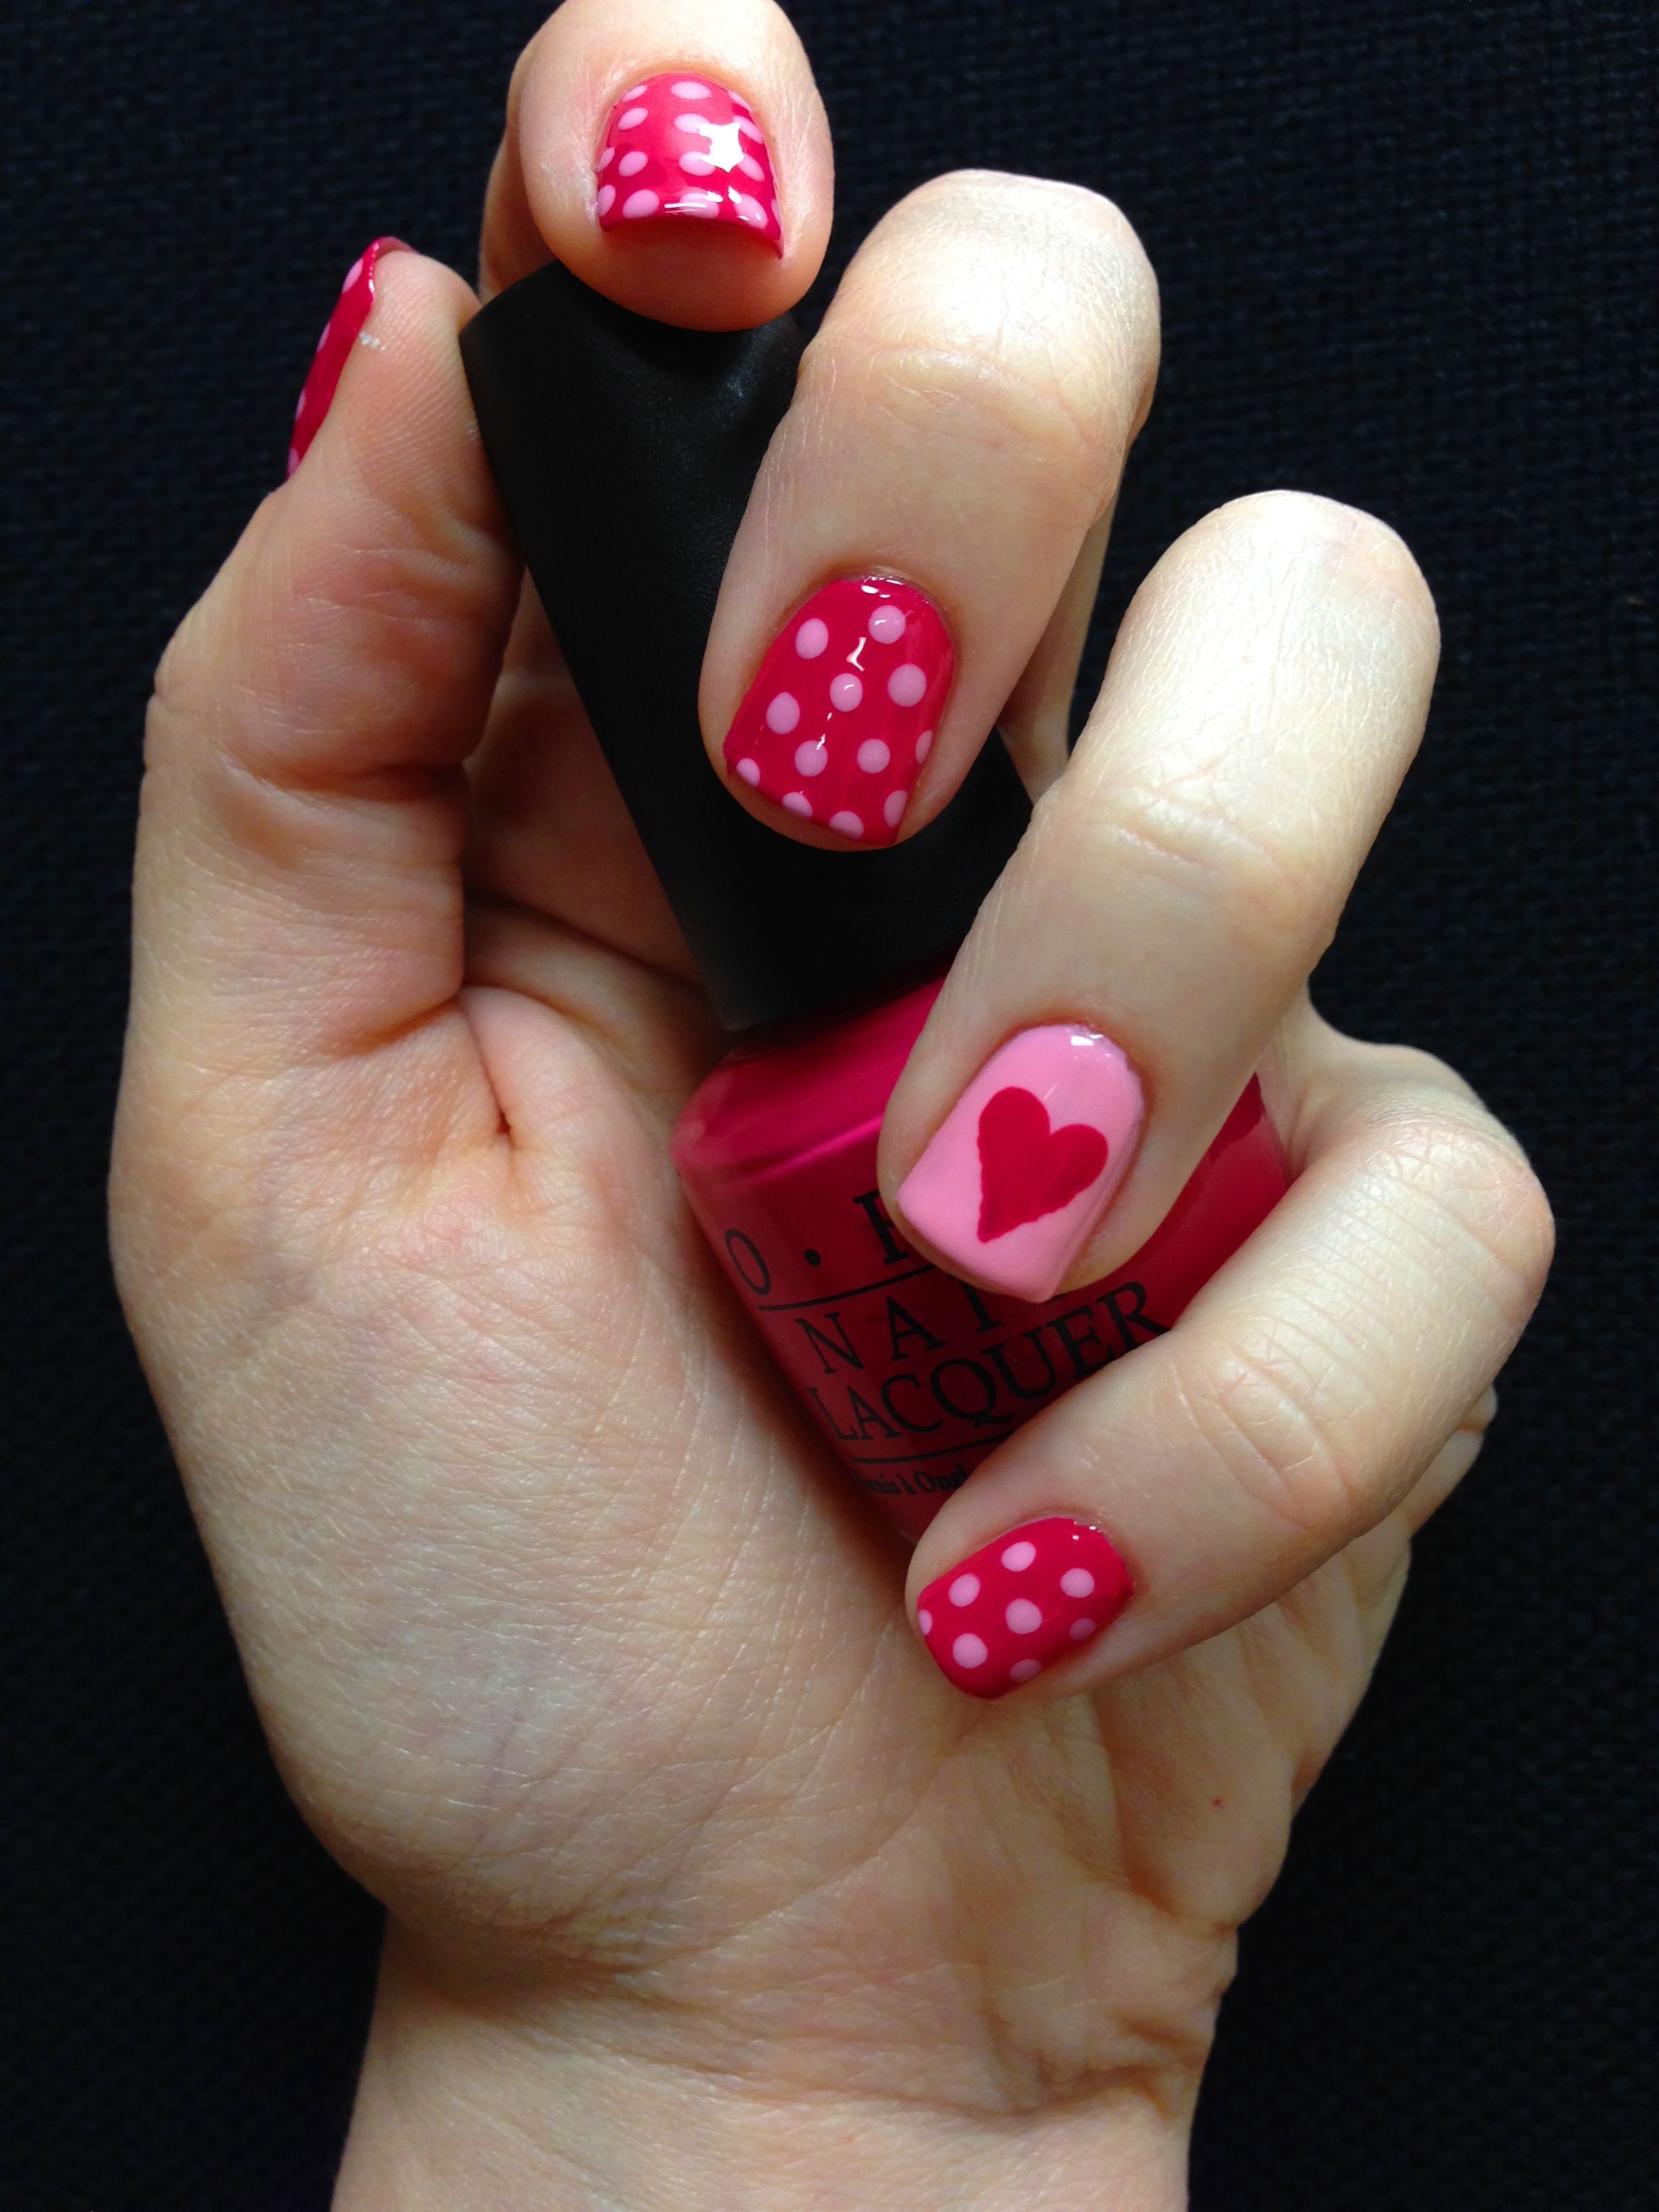 Cute Simple Valentine S Day Nails Imgur Nail Designs Valentines Valentine S Day Nail Designs Valentine Nail Art